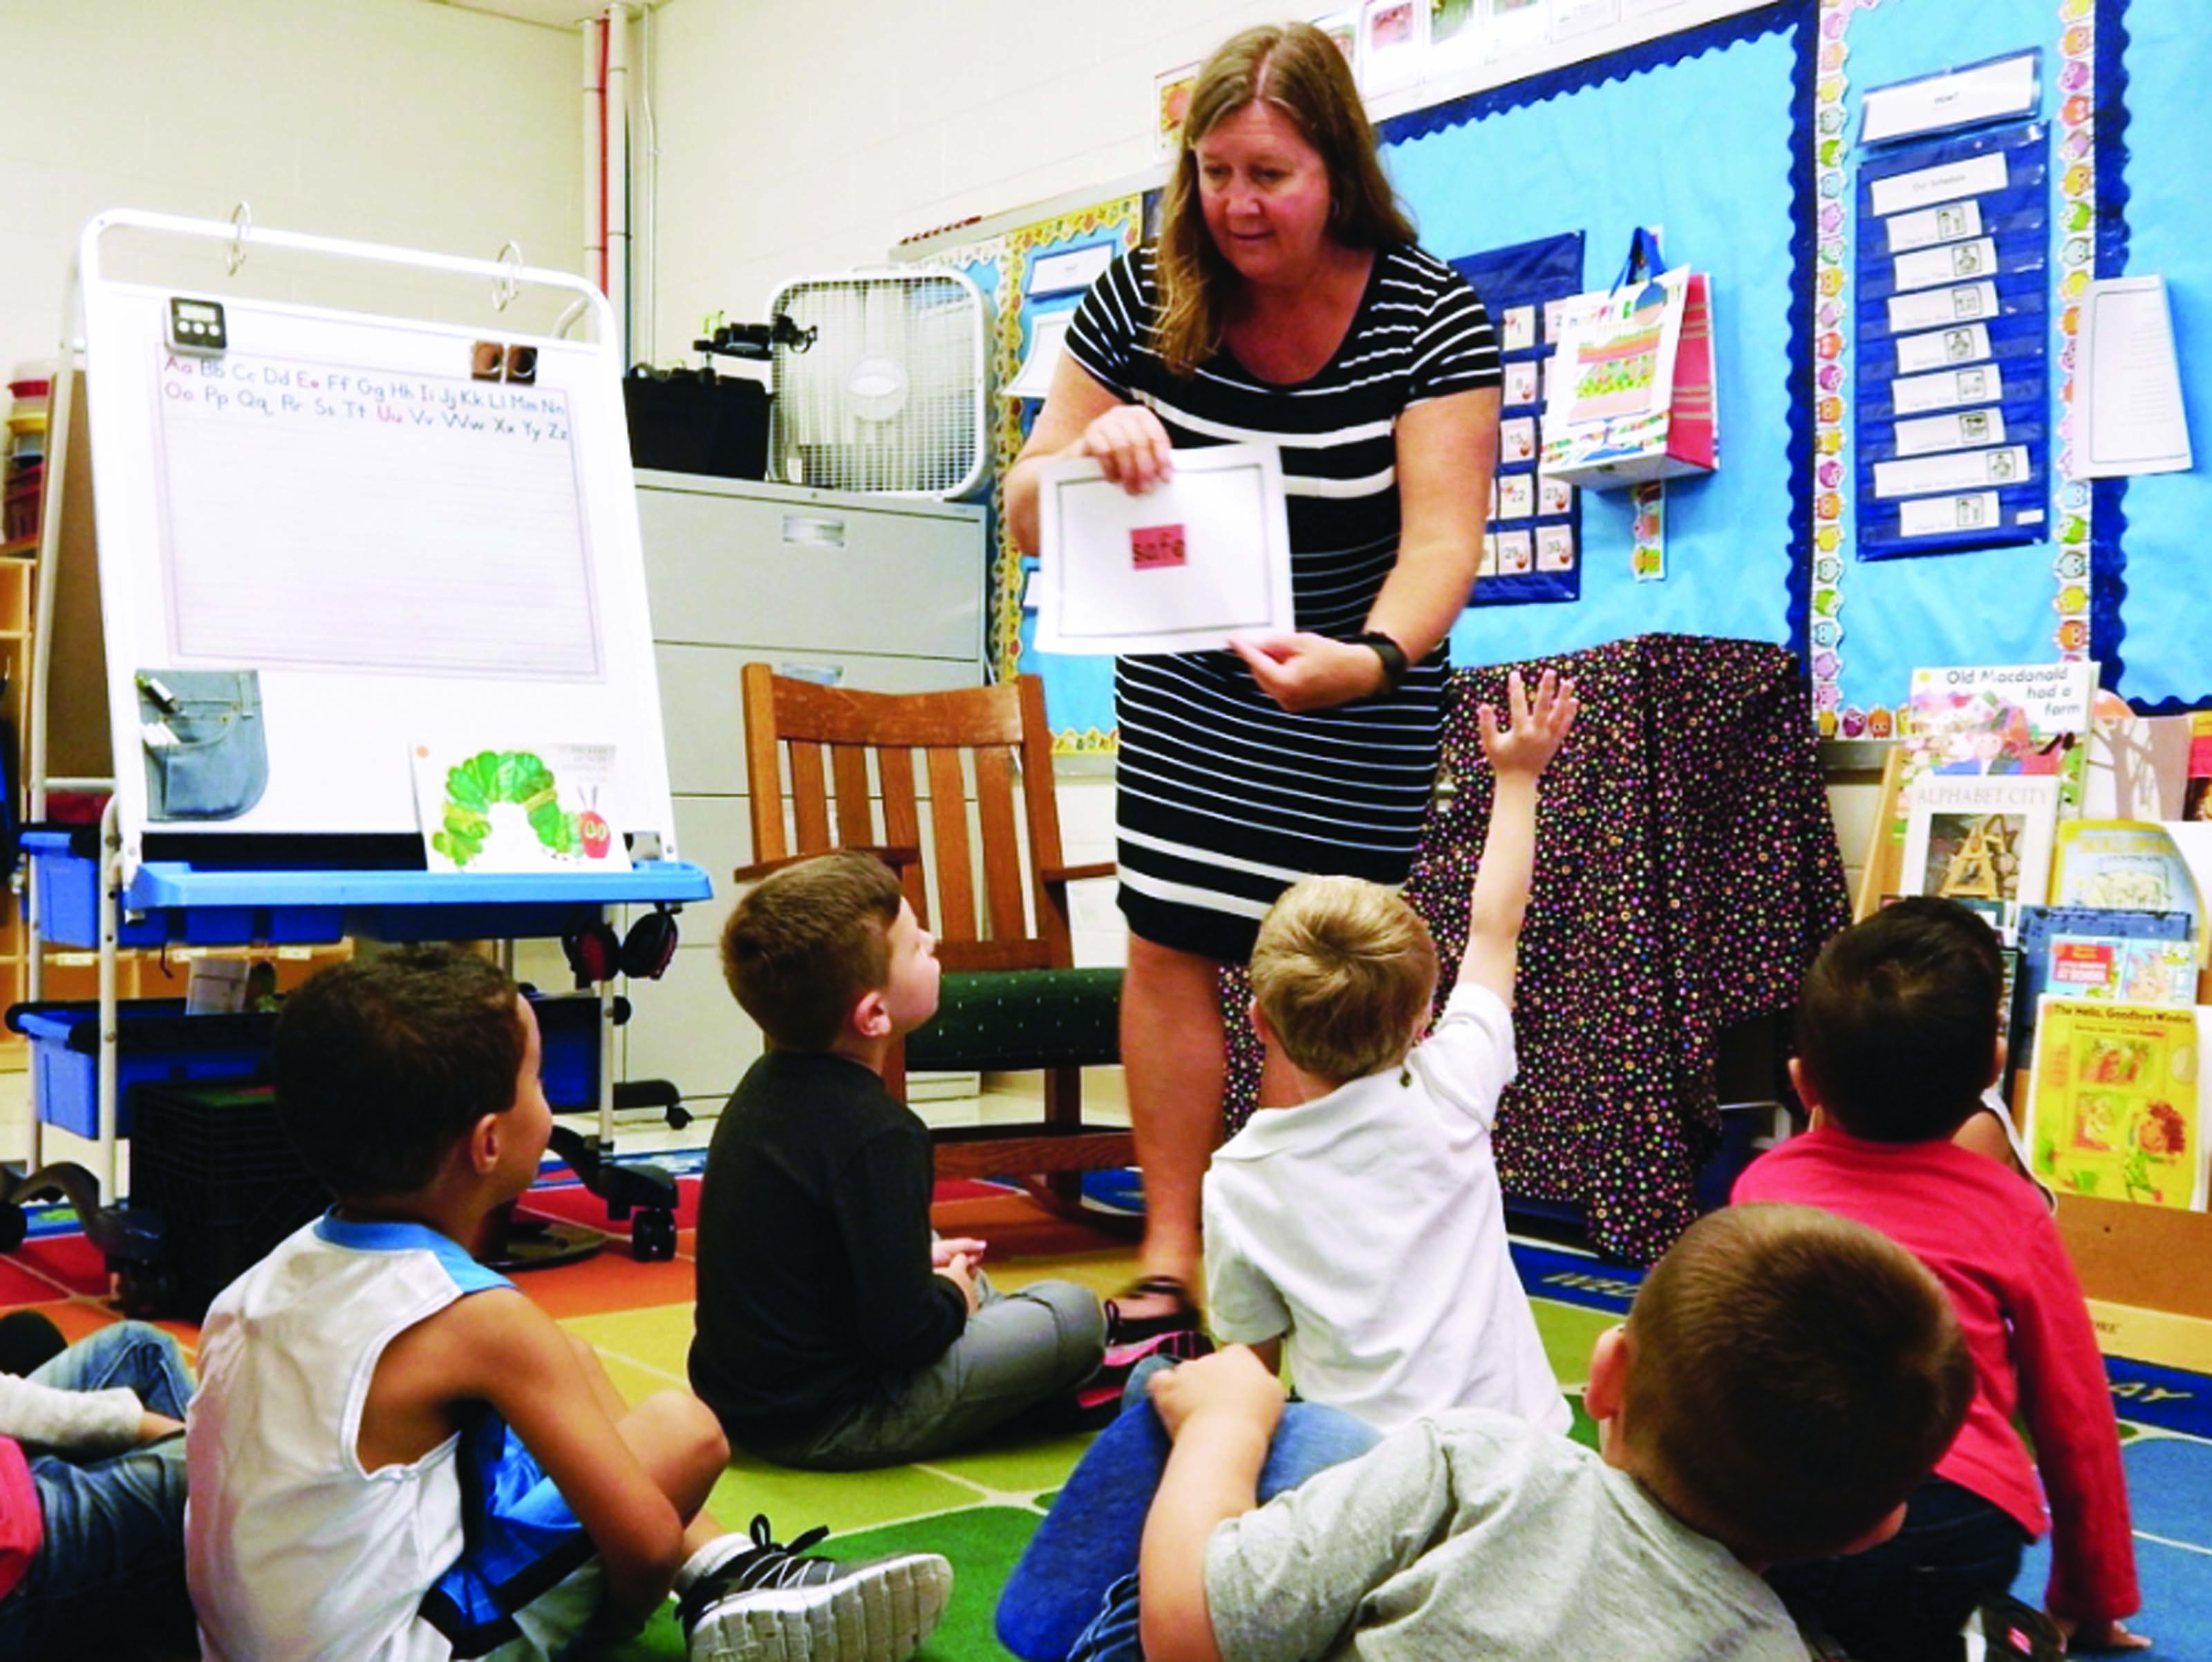 Lynanne Haley, a teacher at John  F. Kennedy Memorial School, leads a discussion with Pre-K students in a morning class in Biddeford on Wednesday. Biddeford Schools launched its first-ever Pre-K program on Monday to help students become better prepared to enter Kindergarten. ED PIERCE/Journal Tribune